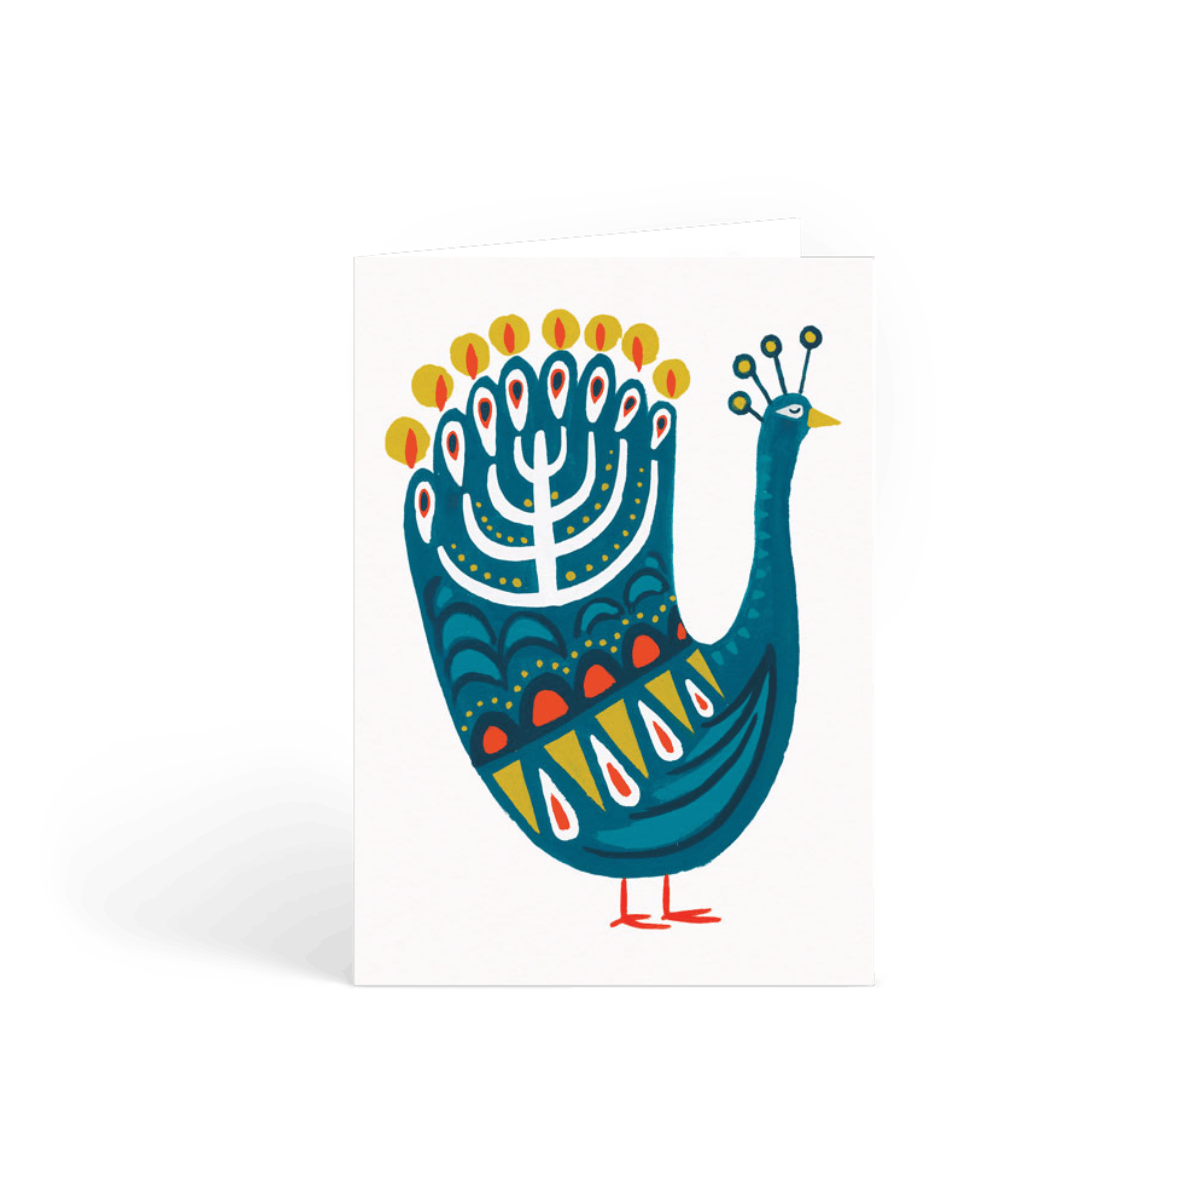 Https%3a%2f%2fwww.papier.com%2fproduct image%2f8183%2f2%2fhanukkah peacock 2026 front 1465919635.png?ixlib=rb 1.1